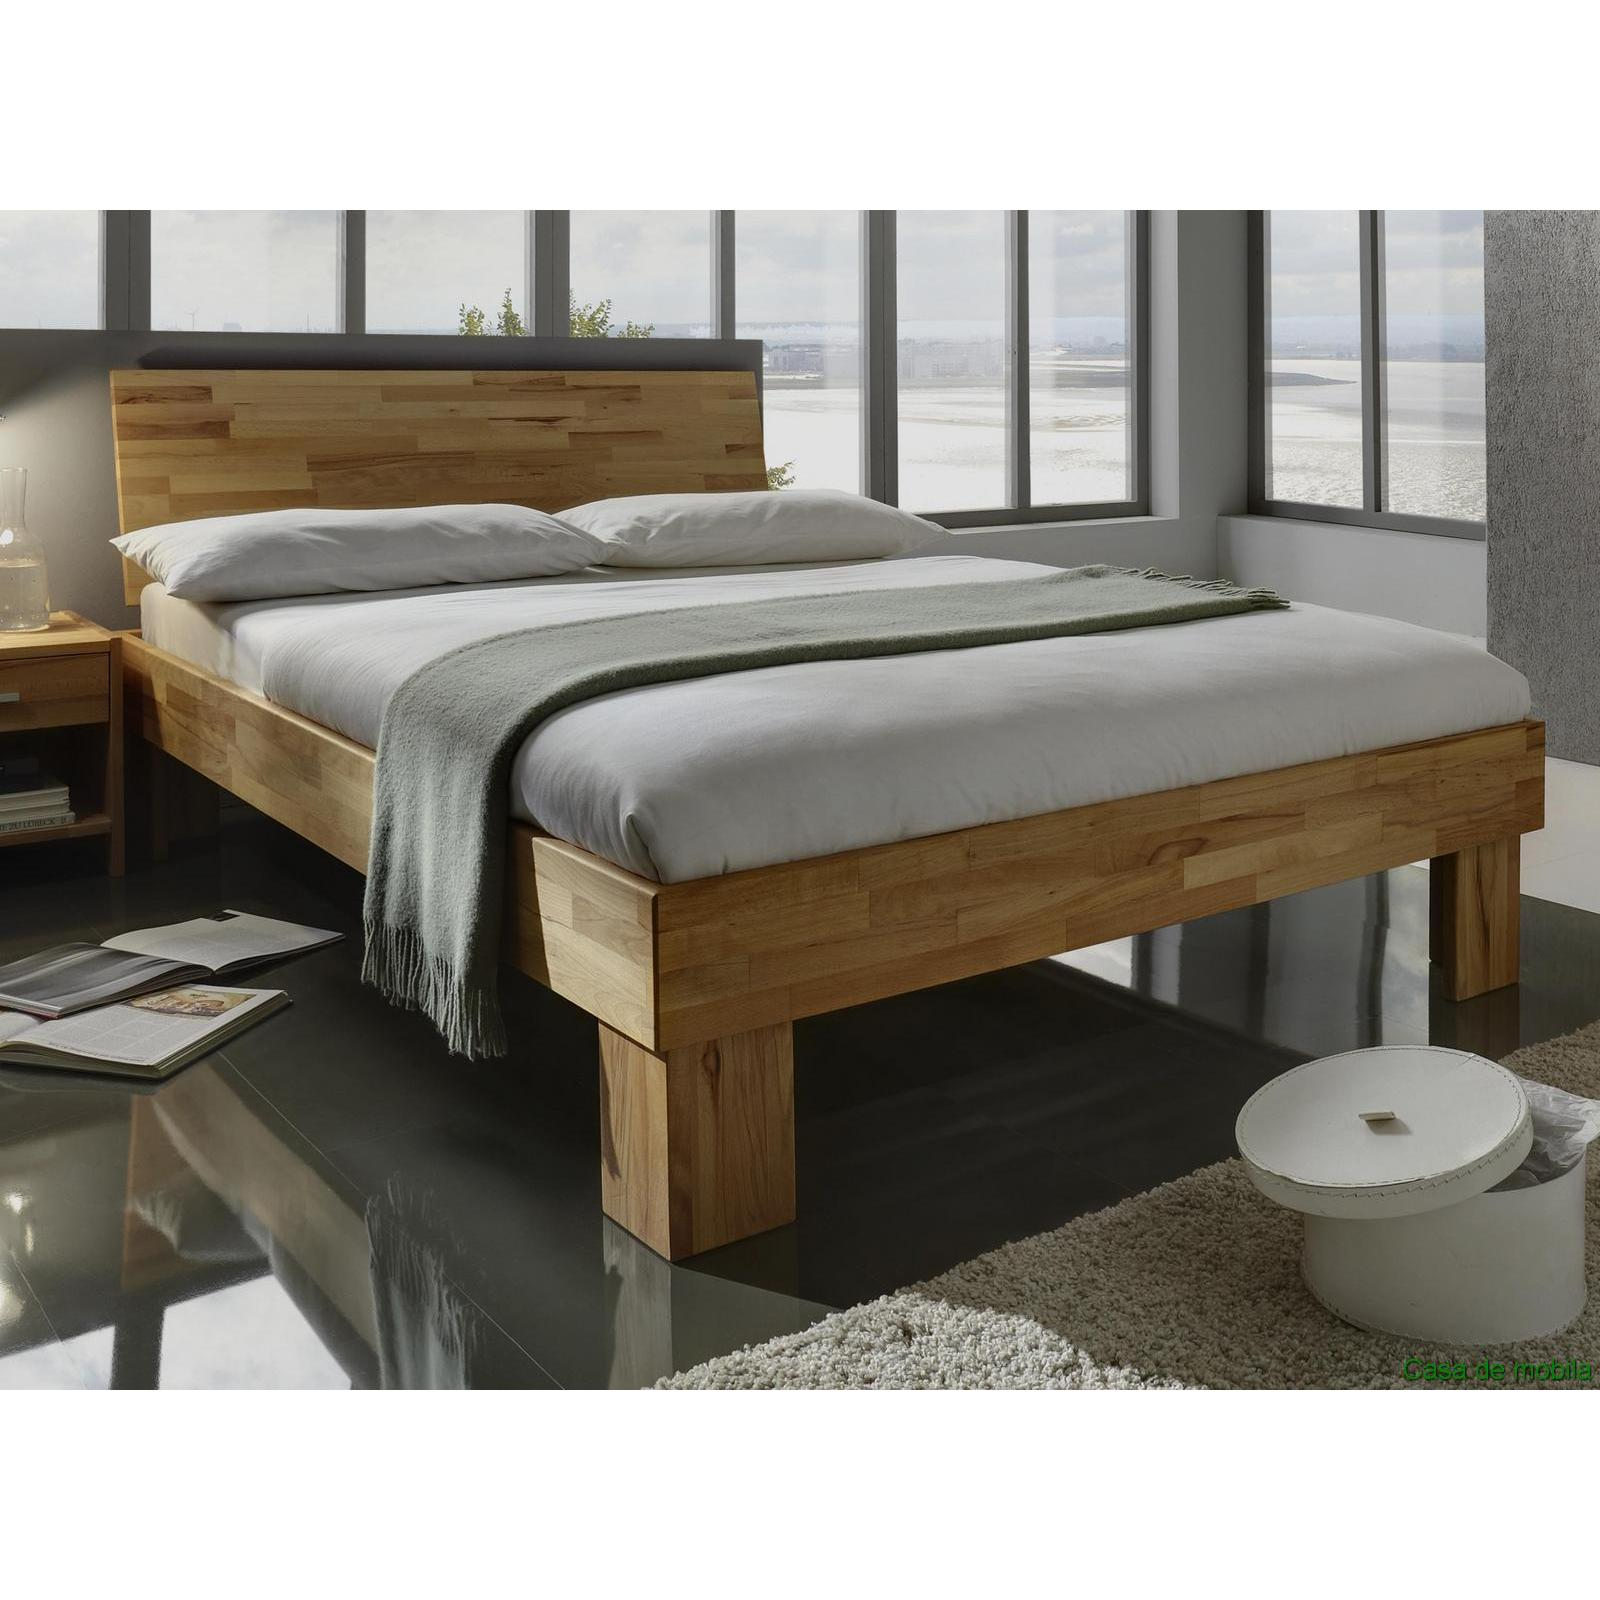 echtholz doppelbett kernbuche massiv ge lt gamma bett 200x200. Black Bedroom Furniture Sets. Home Design Ideas